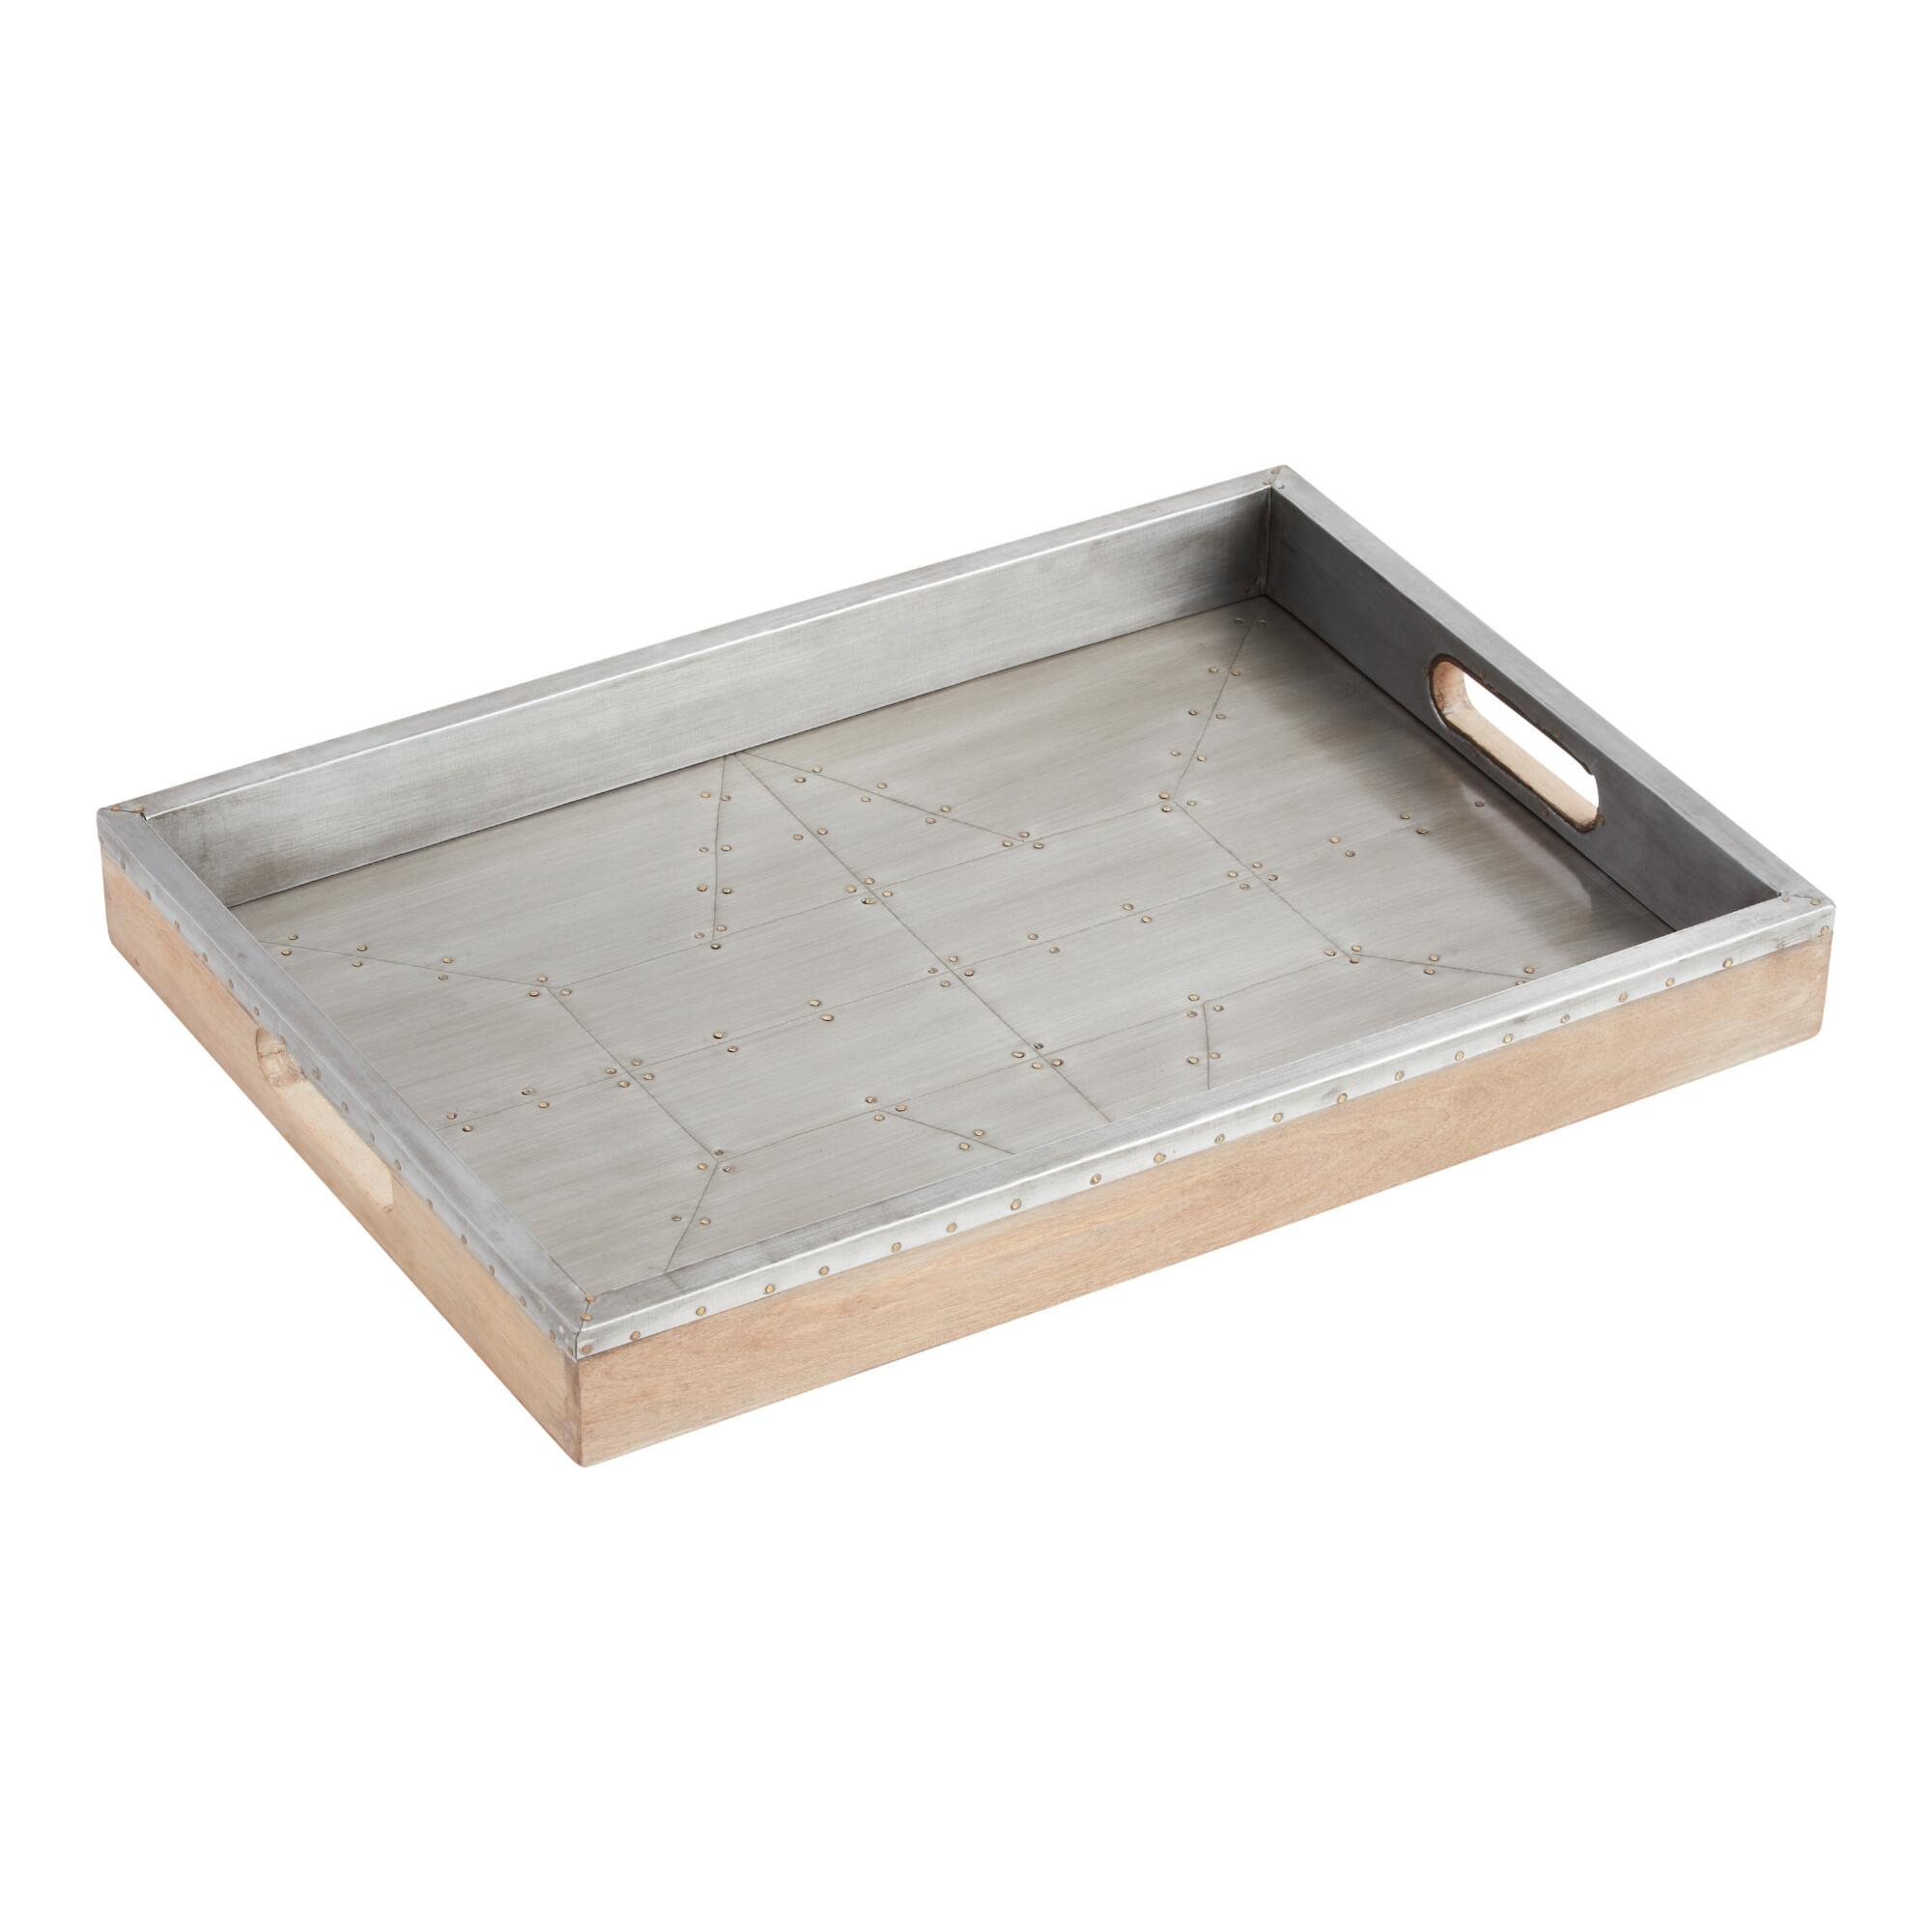 Industrial Wood and Metal Tray: Gray/Metallic by World Market